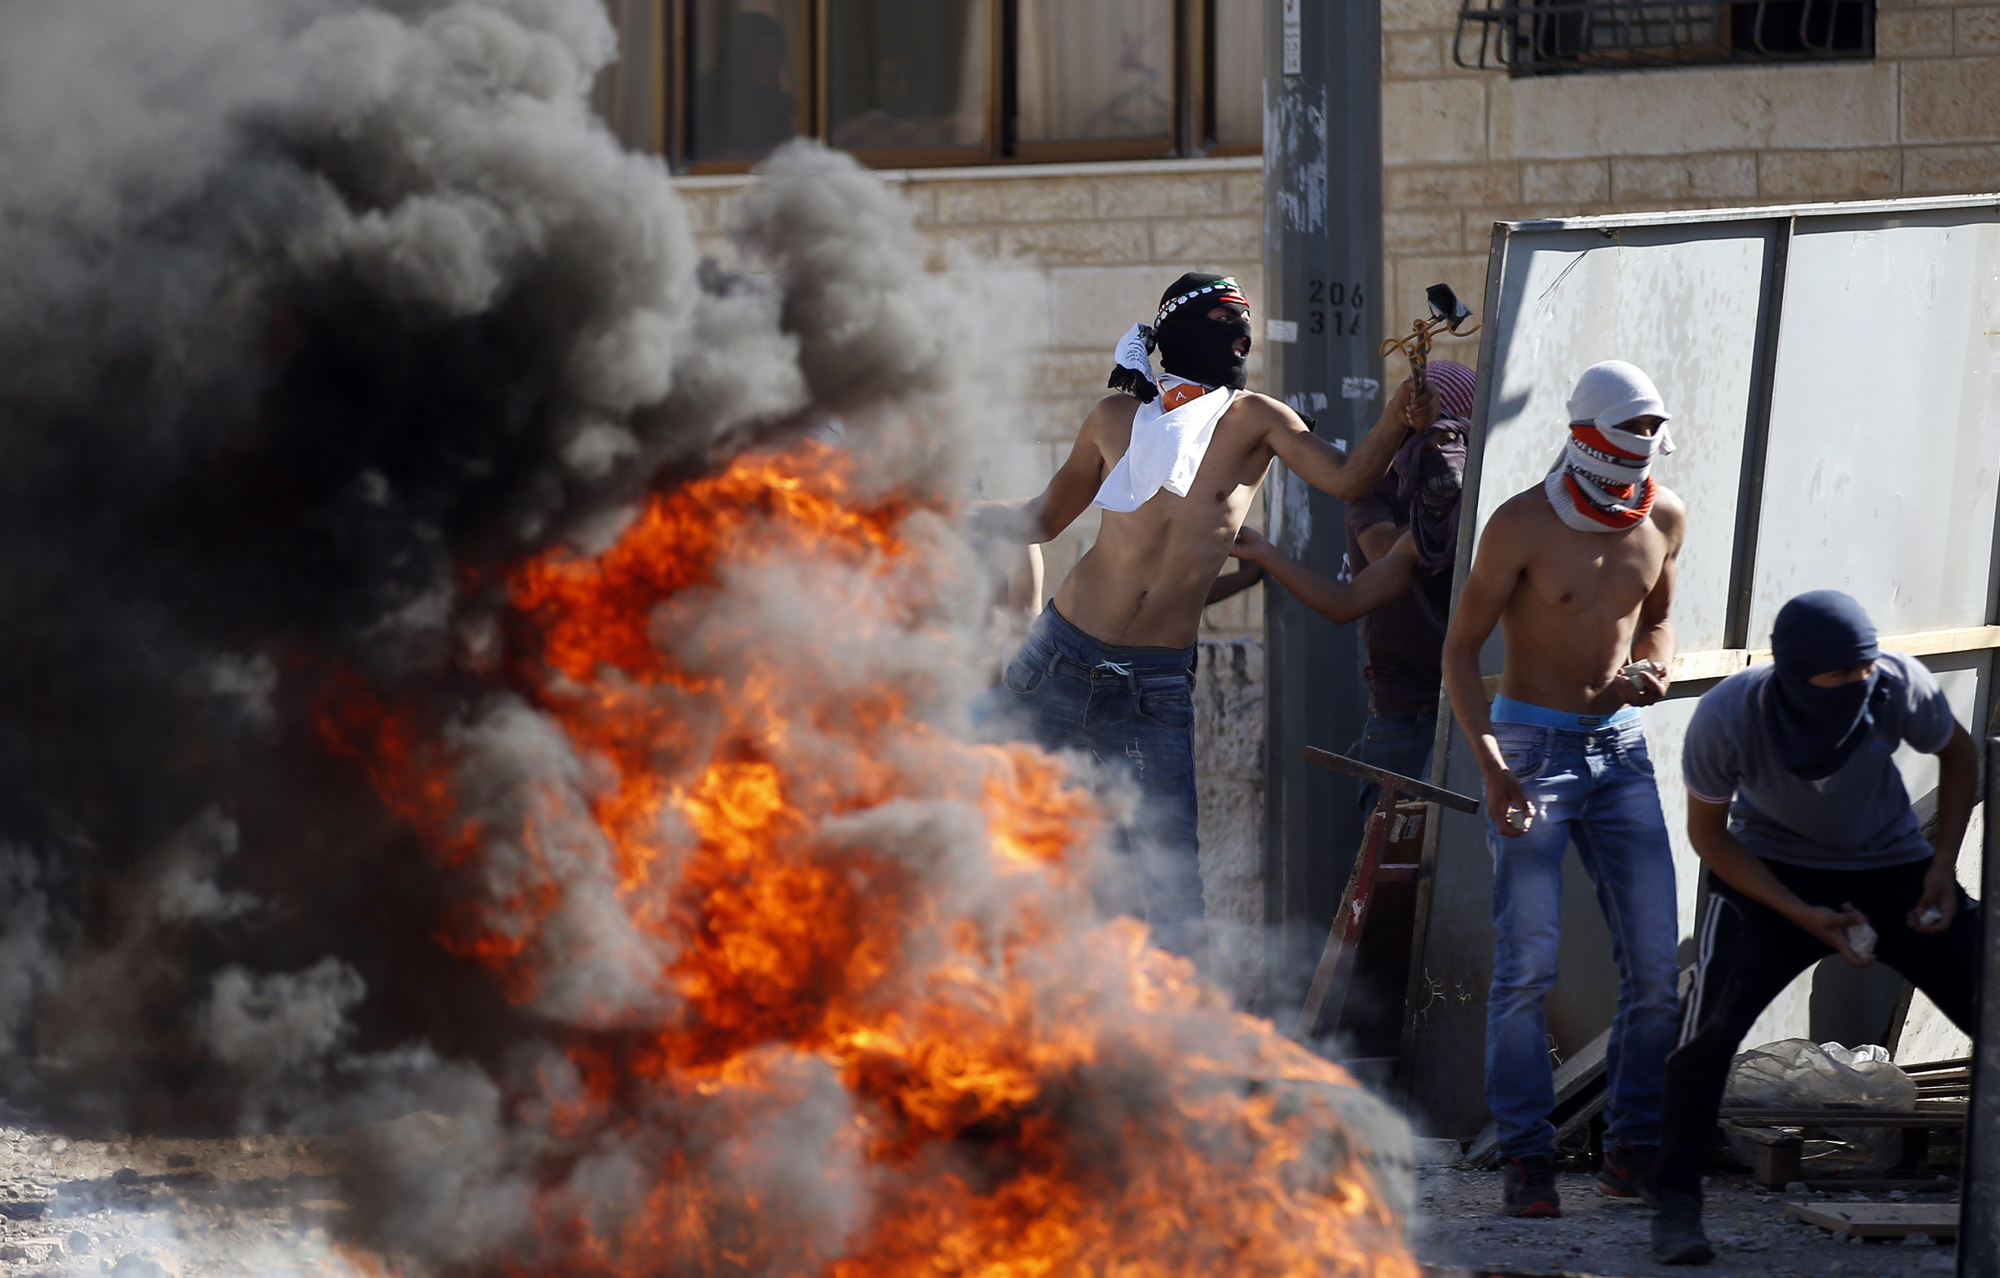 Masked Palestinian protesters throw stones towards Israeli police during clashes in the Shuafat suburb of Jerusalem, on July 2.